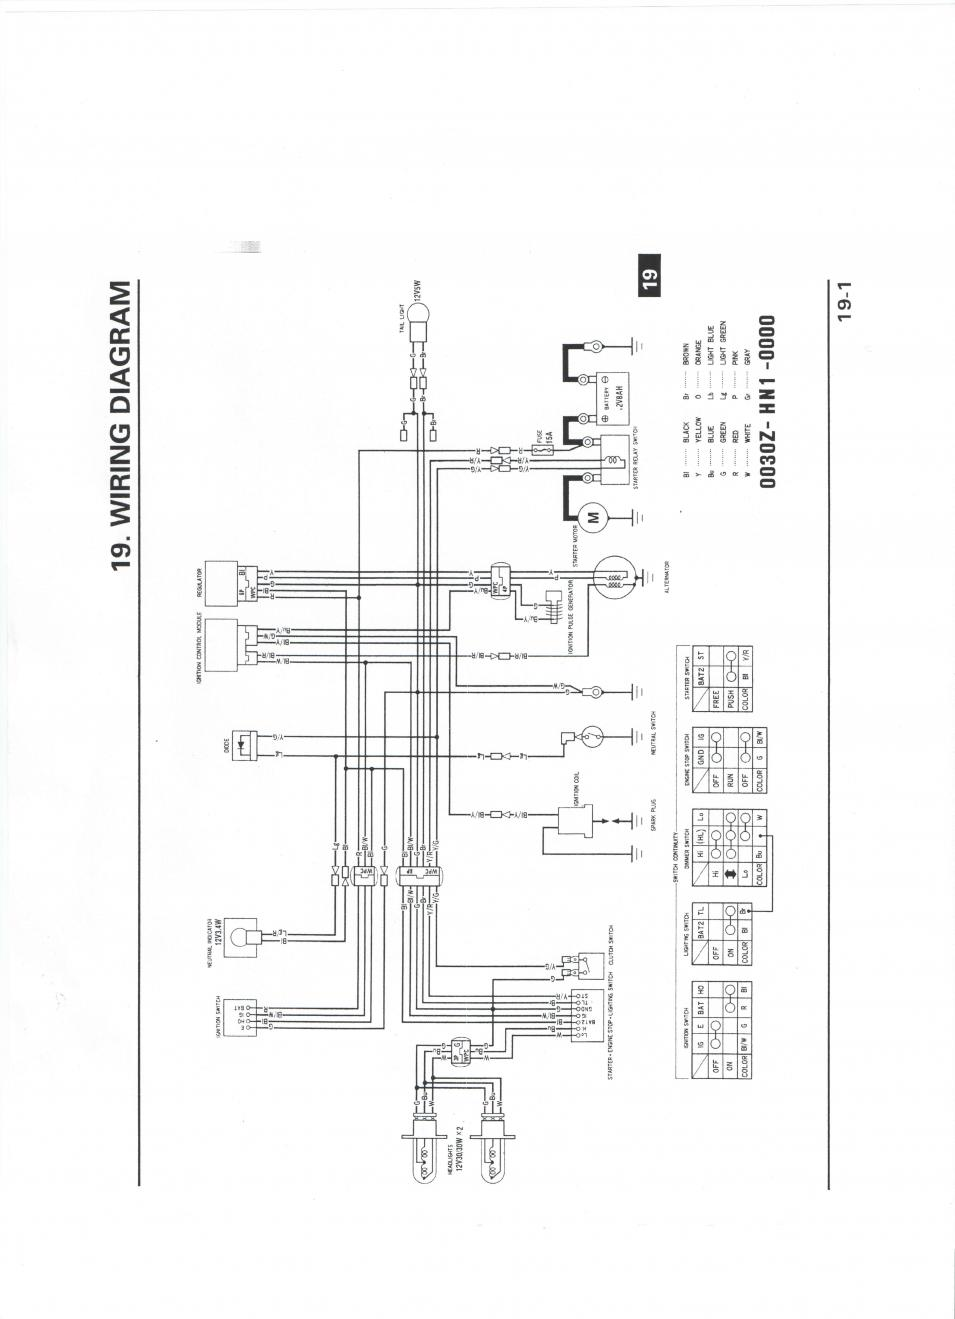 2005 Crf450x Wiring Diagram Photos